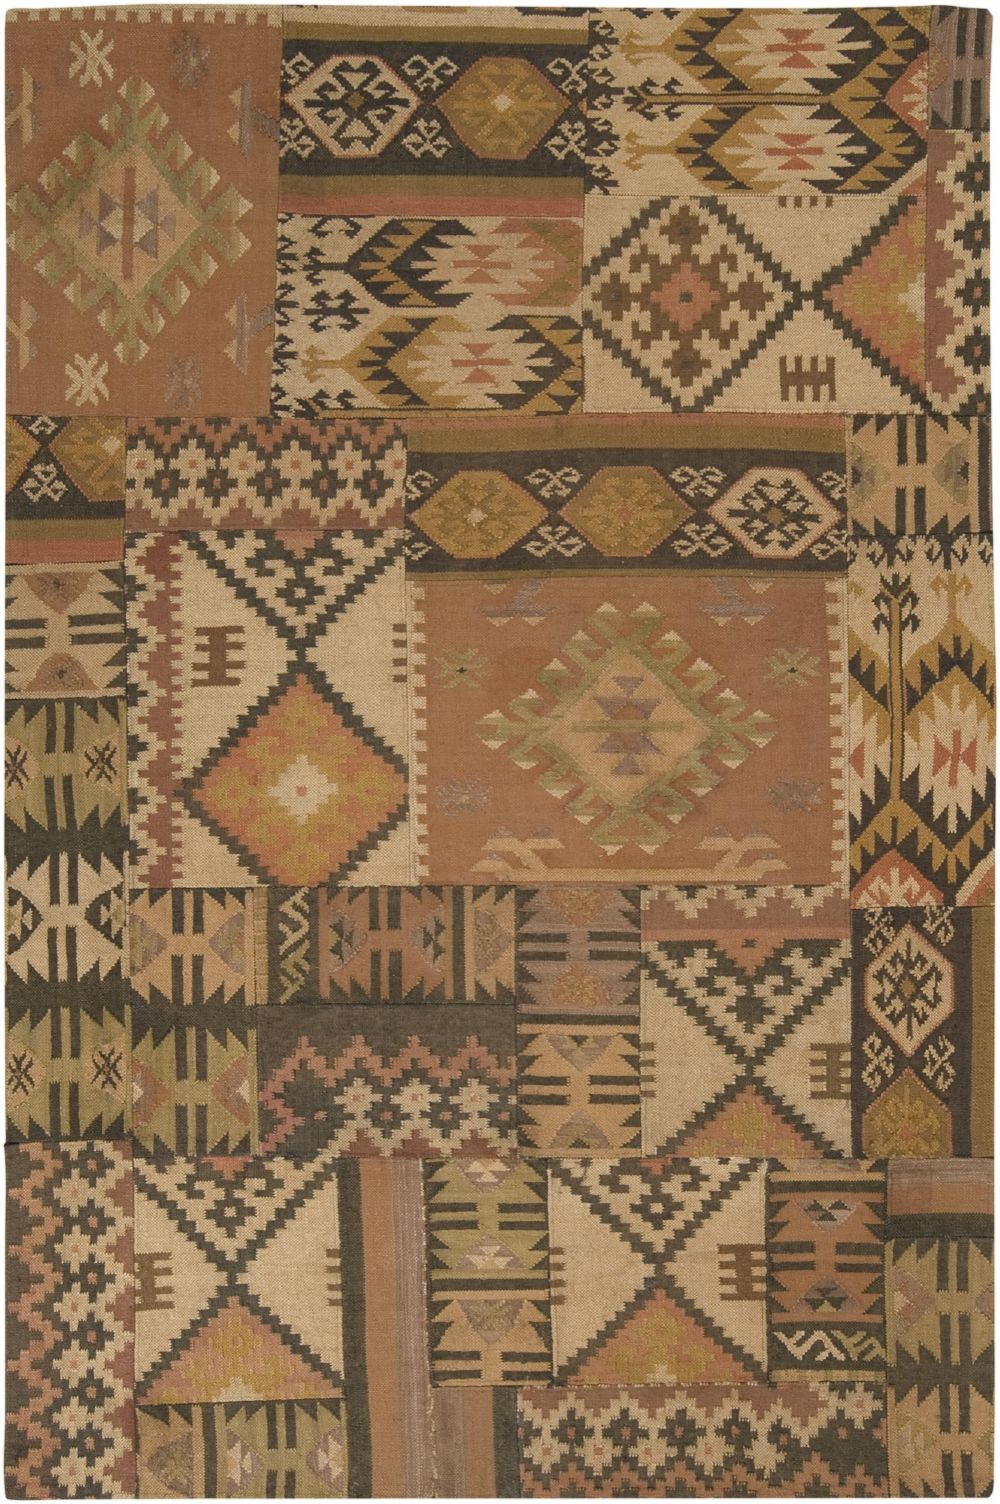 surya patch work southwestern/lodge area rug collection